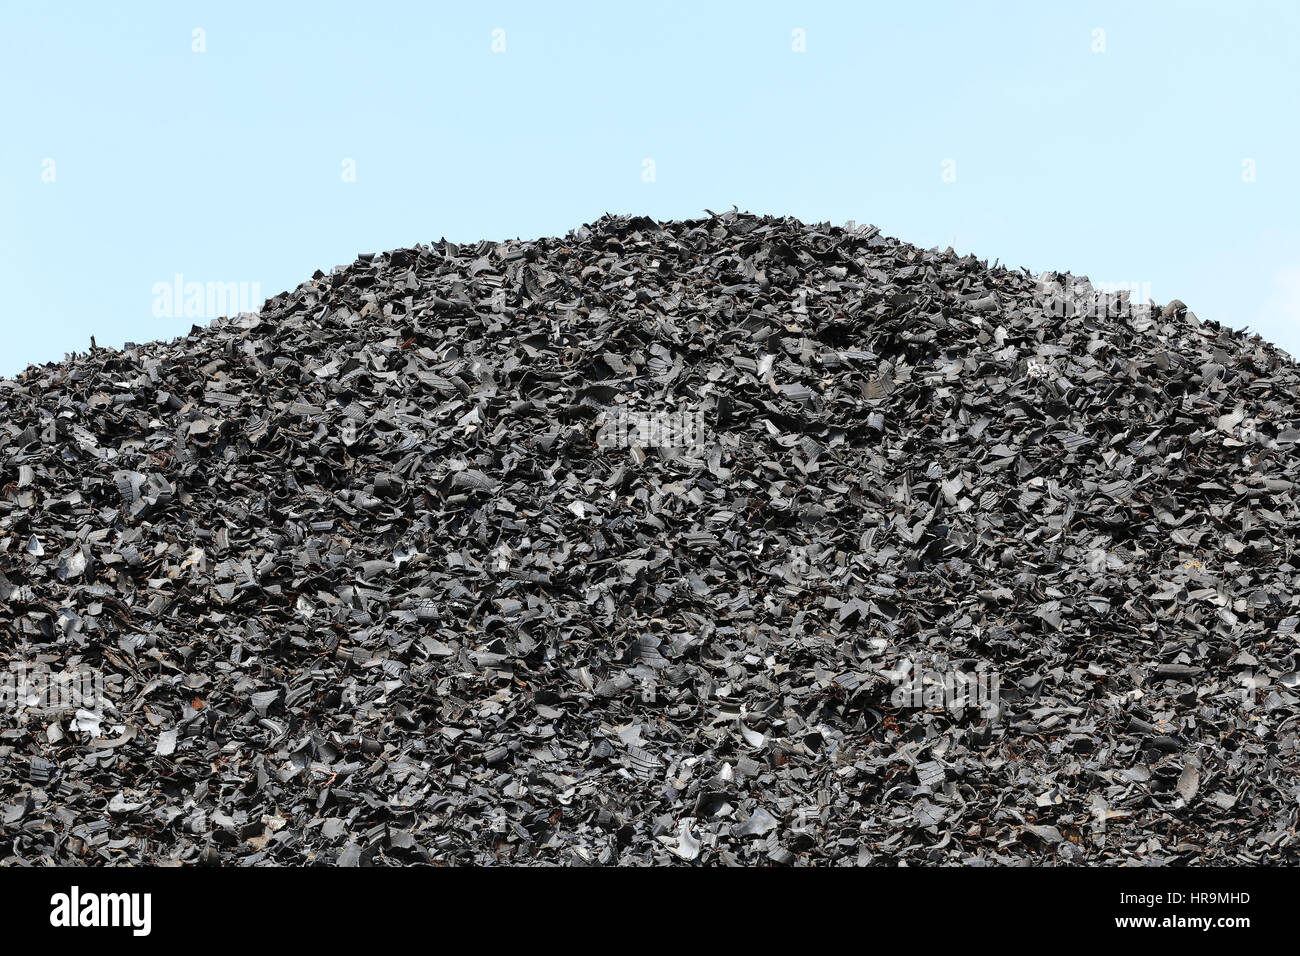 shredded tires at recycling yard - Stock Image